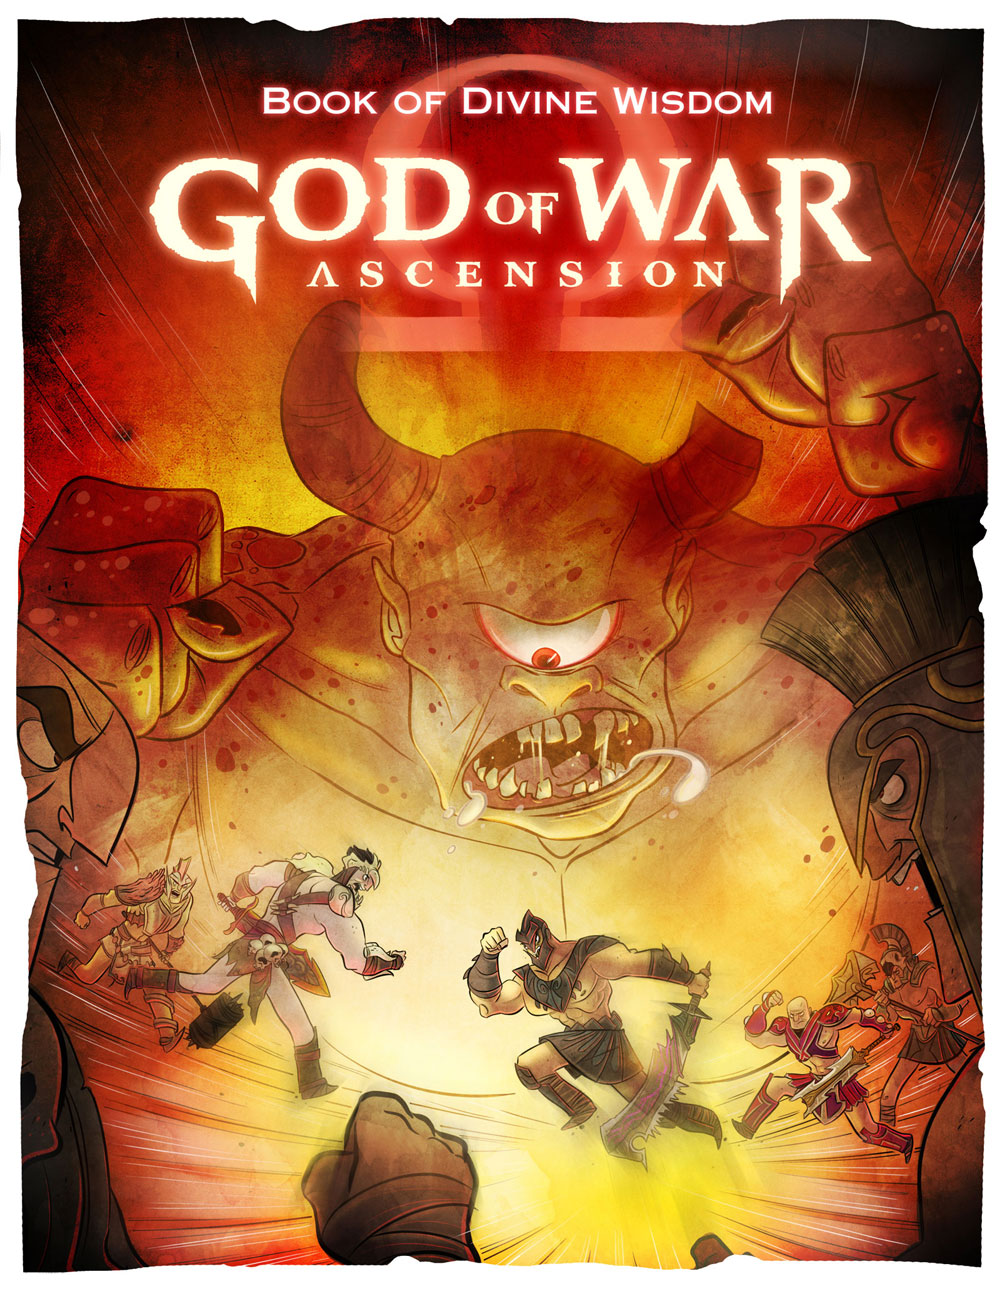 God of war collection official strategy guide: michael lummis.